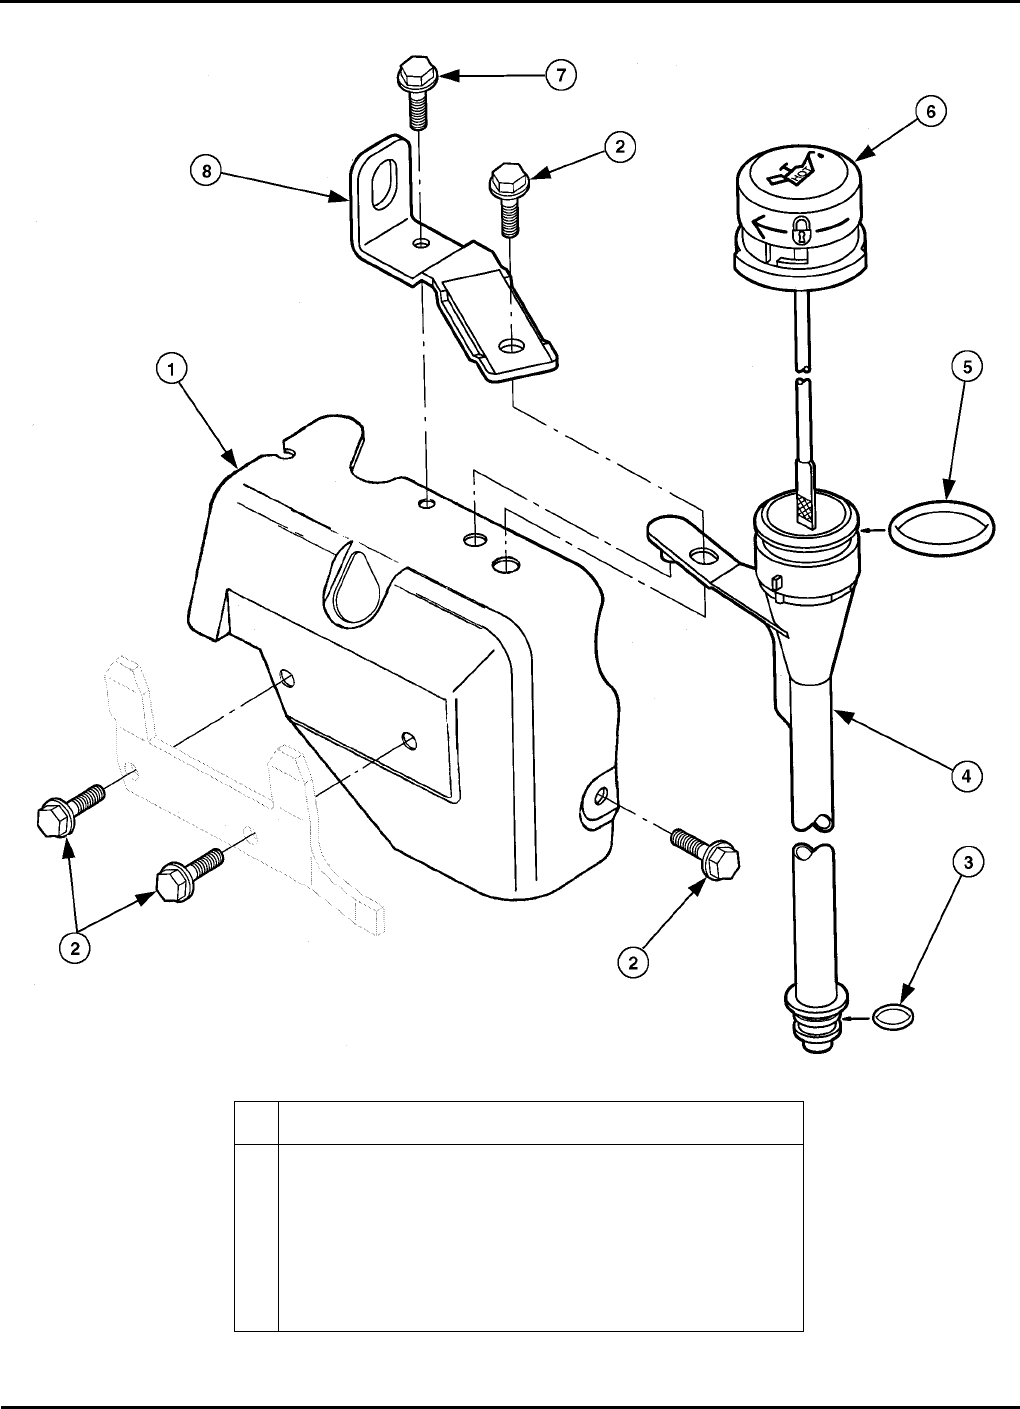 Page 33 of Cub Cadet Lawn Mower 2146 User Guide